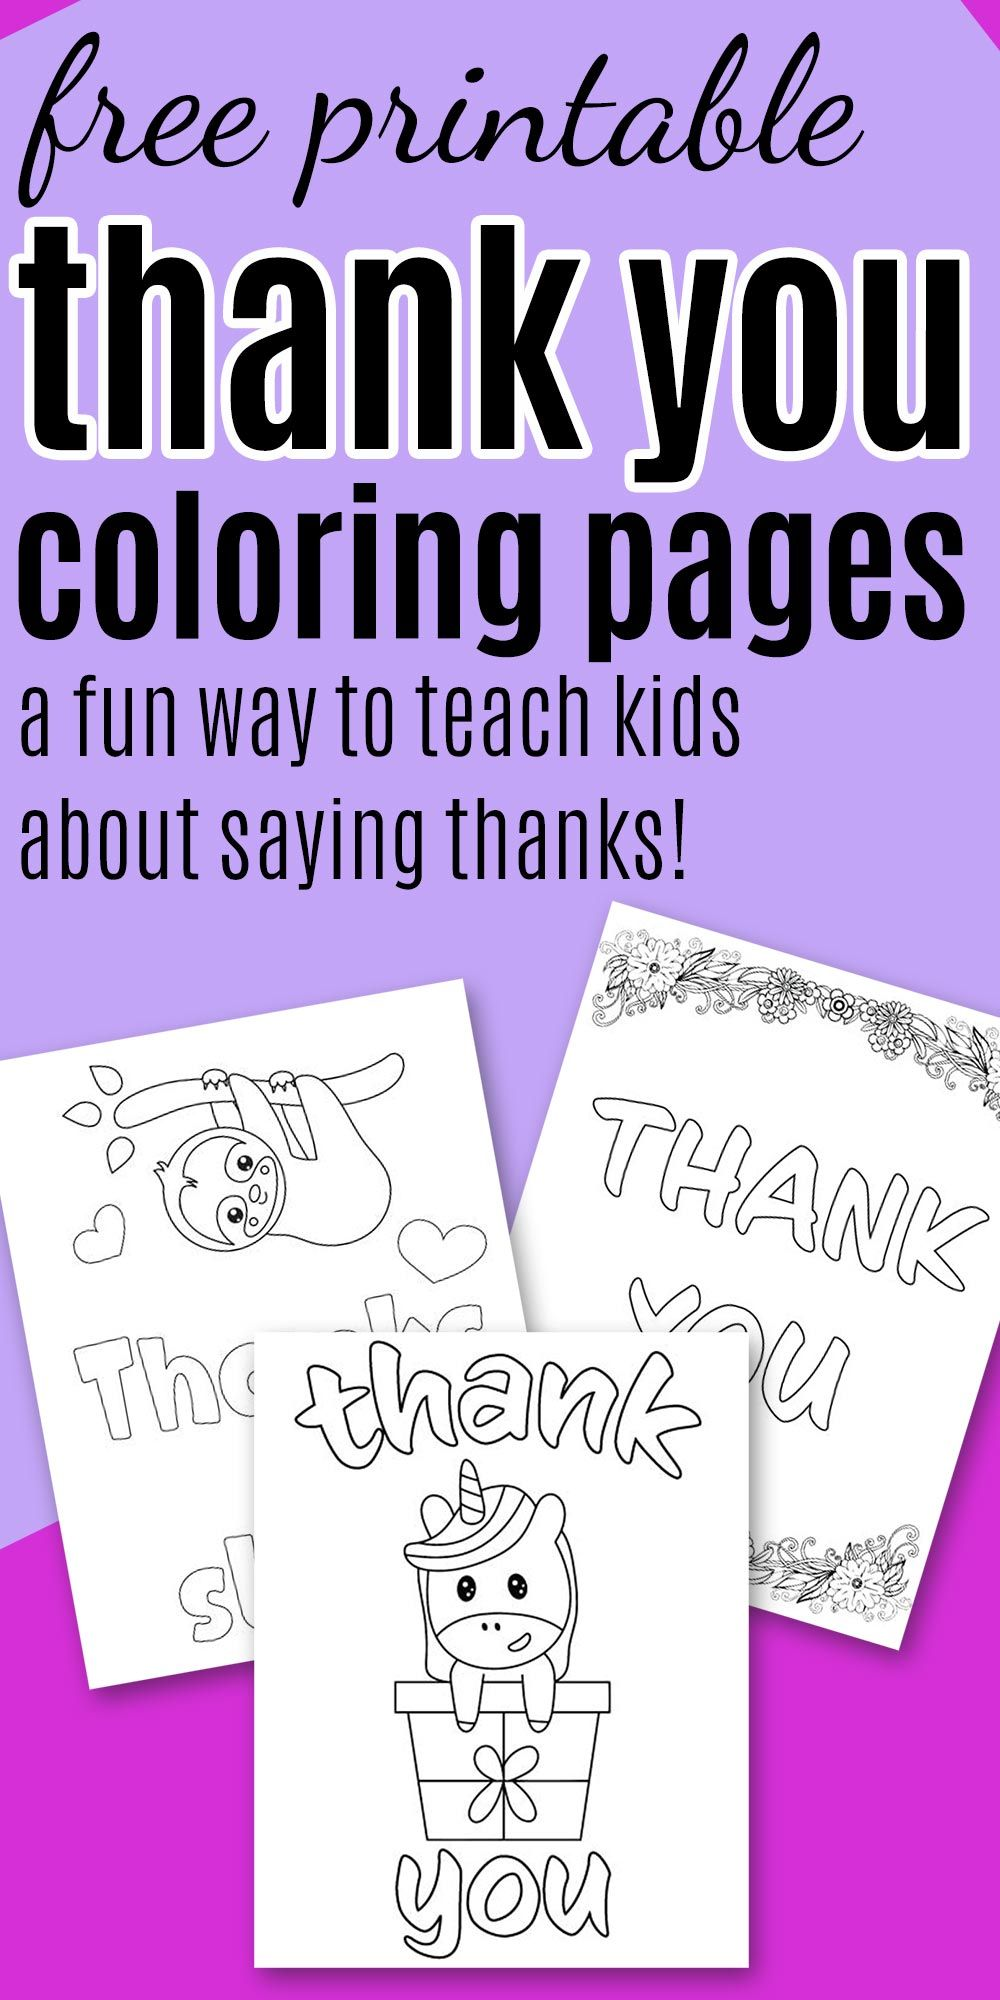 7 Free Printable Thank You Coloring Pages Printable Coloring Cards Printable Thank You Cards Thank You Printable